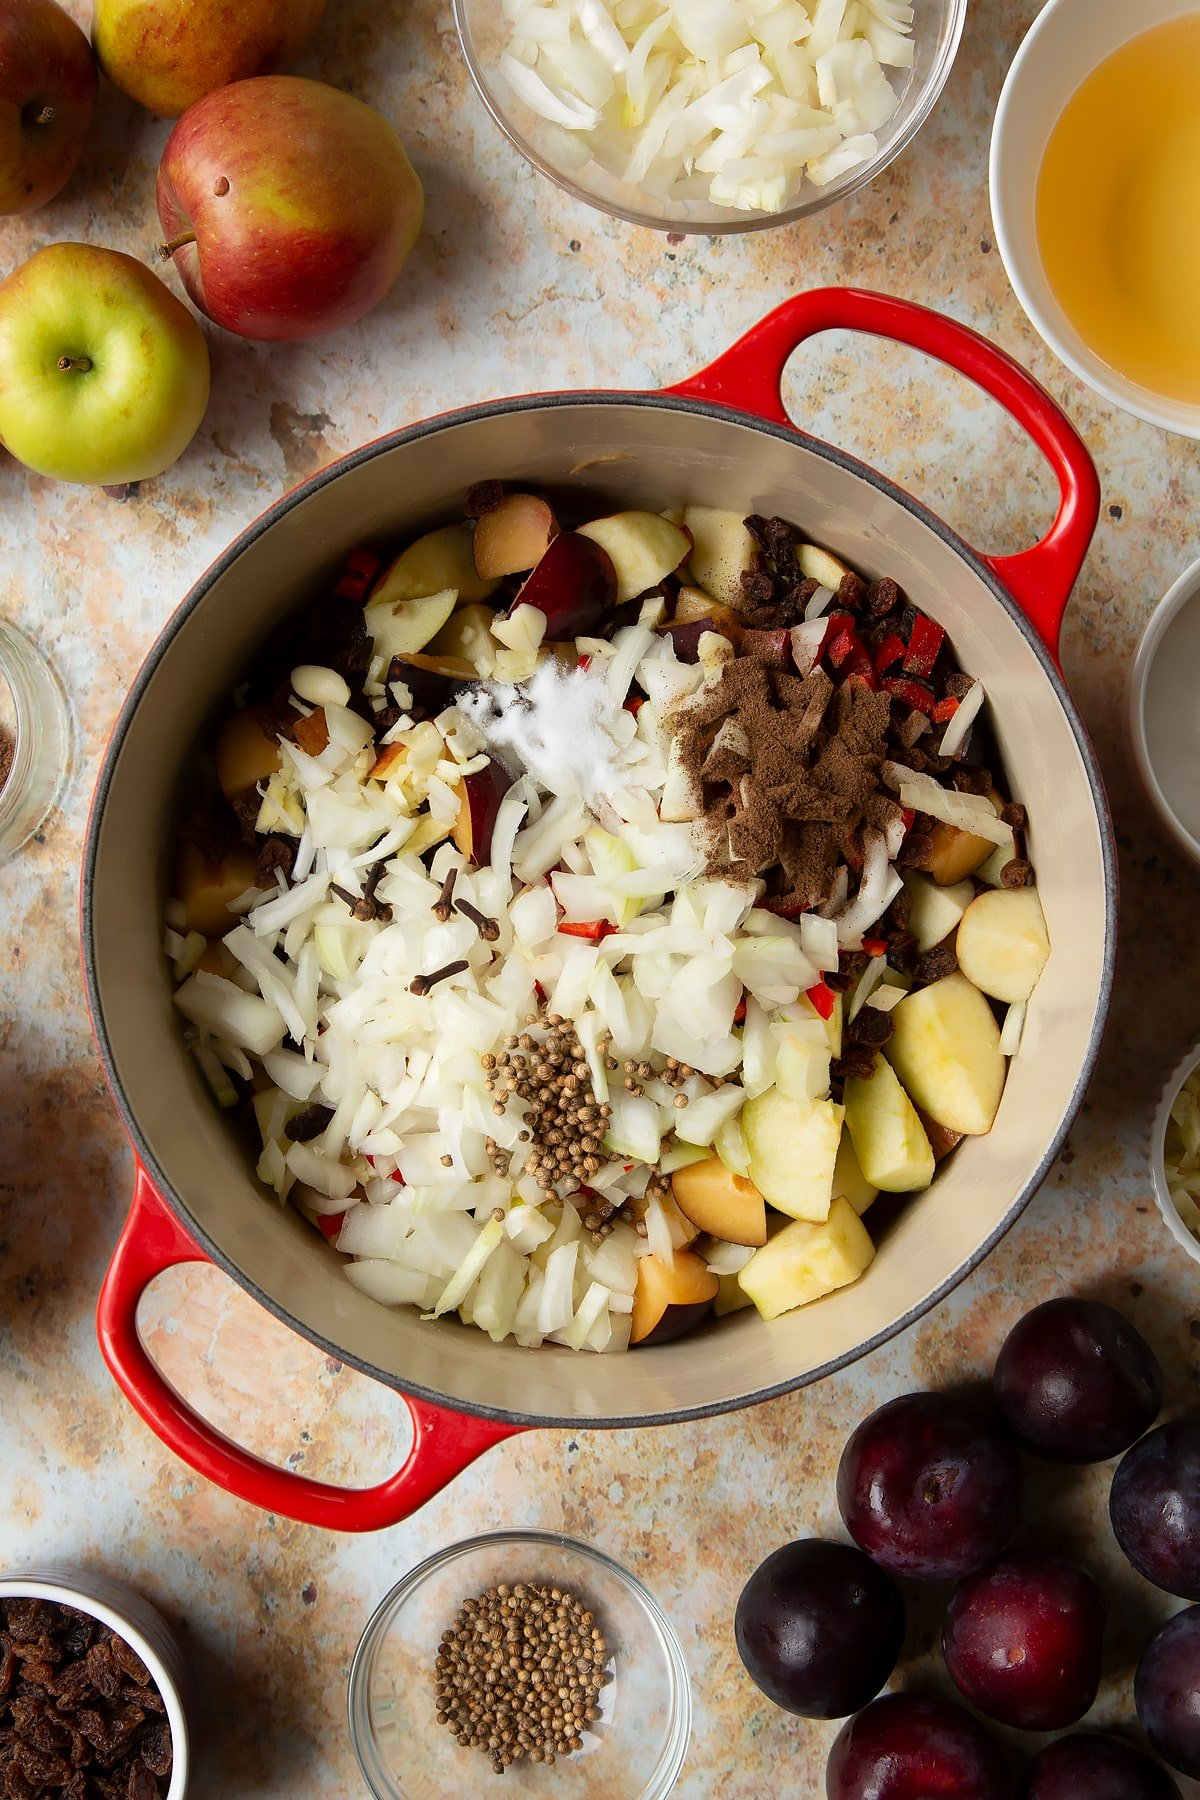 Chopped plums, apples, raisins, chilli, onion and garlic in a large pan. Ingredients to make a fruit chutney recipe surround the pan.